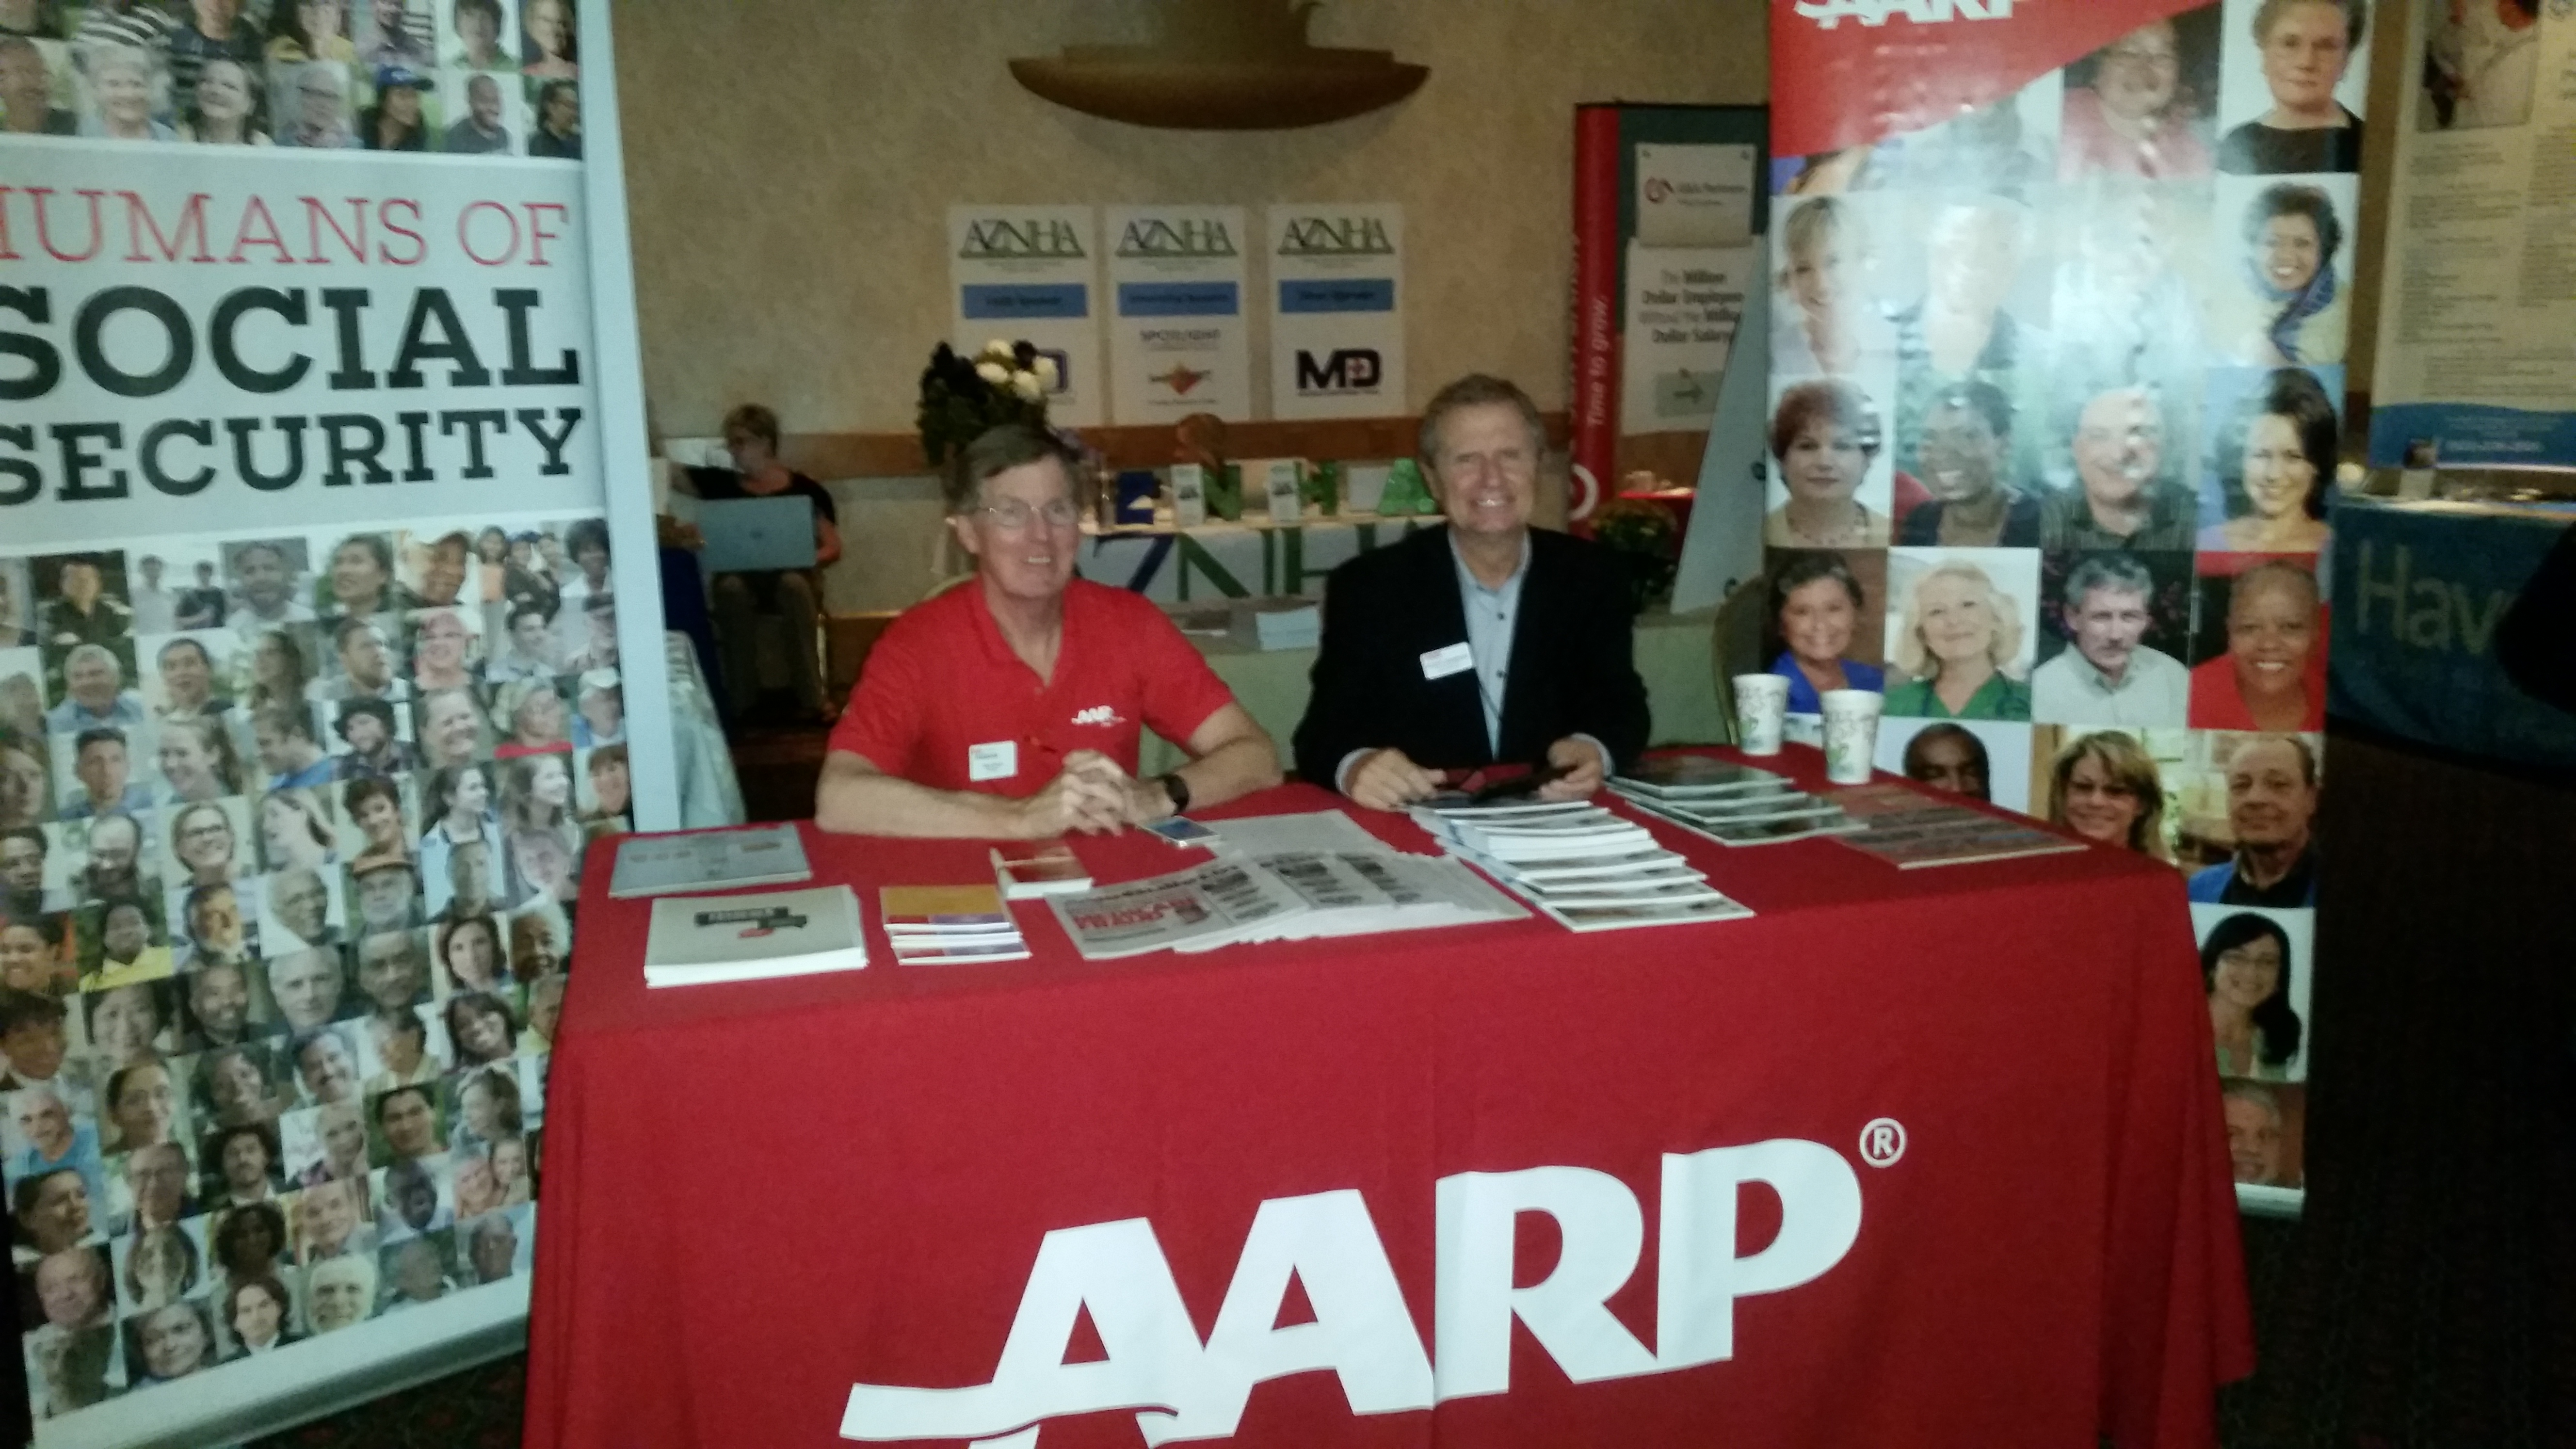 AARP Happy Exhibitors